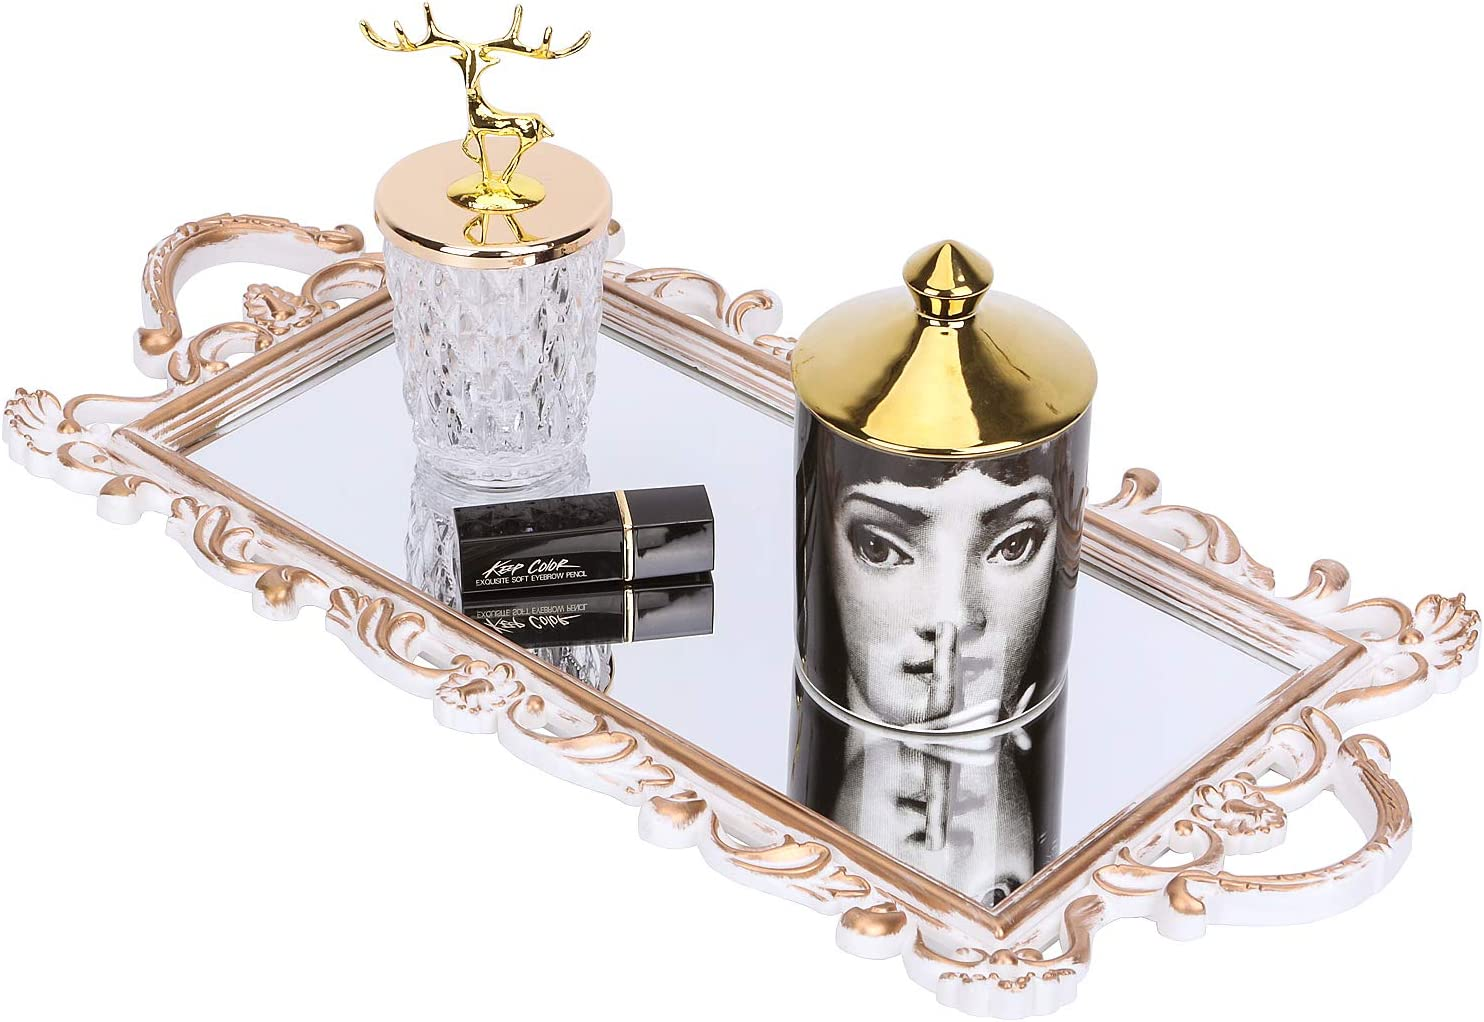 Zosenley Decorative Mirror Tray, Rectangle Vanity Organizer for Perfume, Makeup, Jewelry and Décor, Floral Display and Serving Tray for Ottoman, Coffee Table, Dresser and Bathroom, Golden White